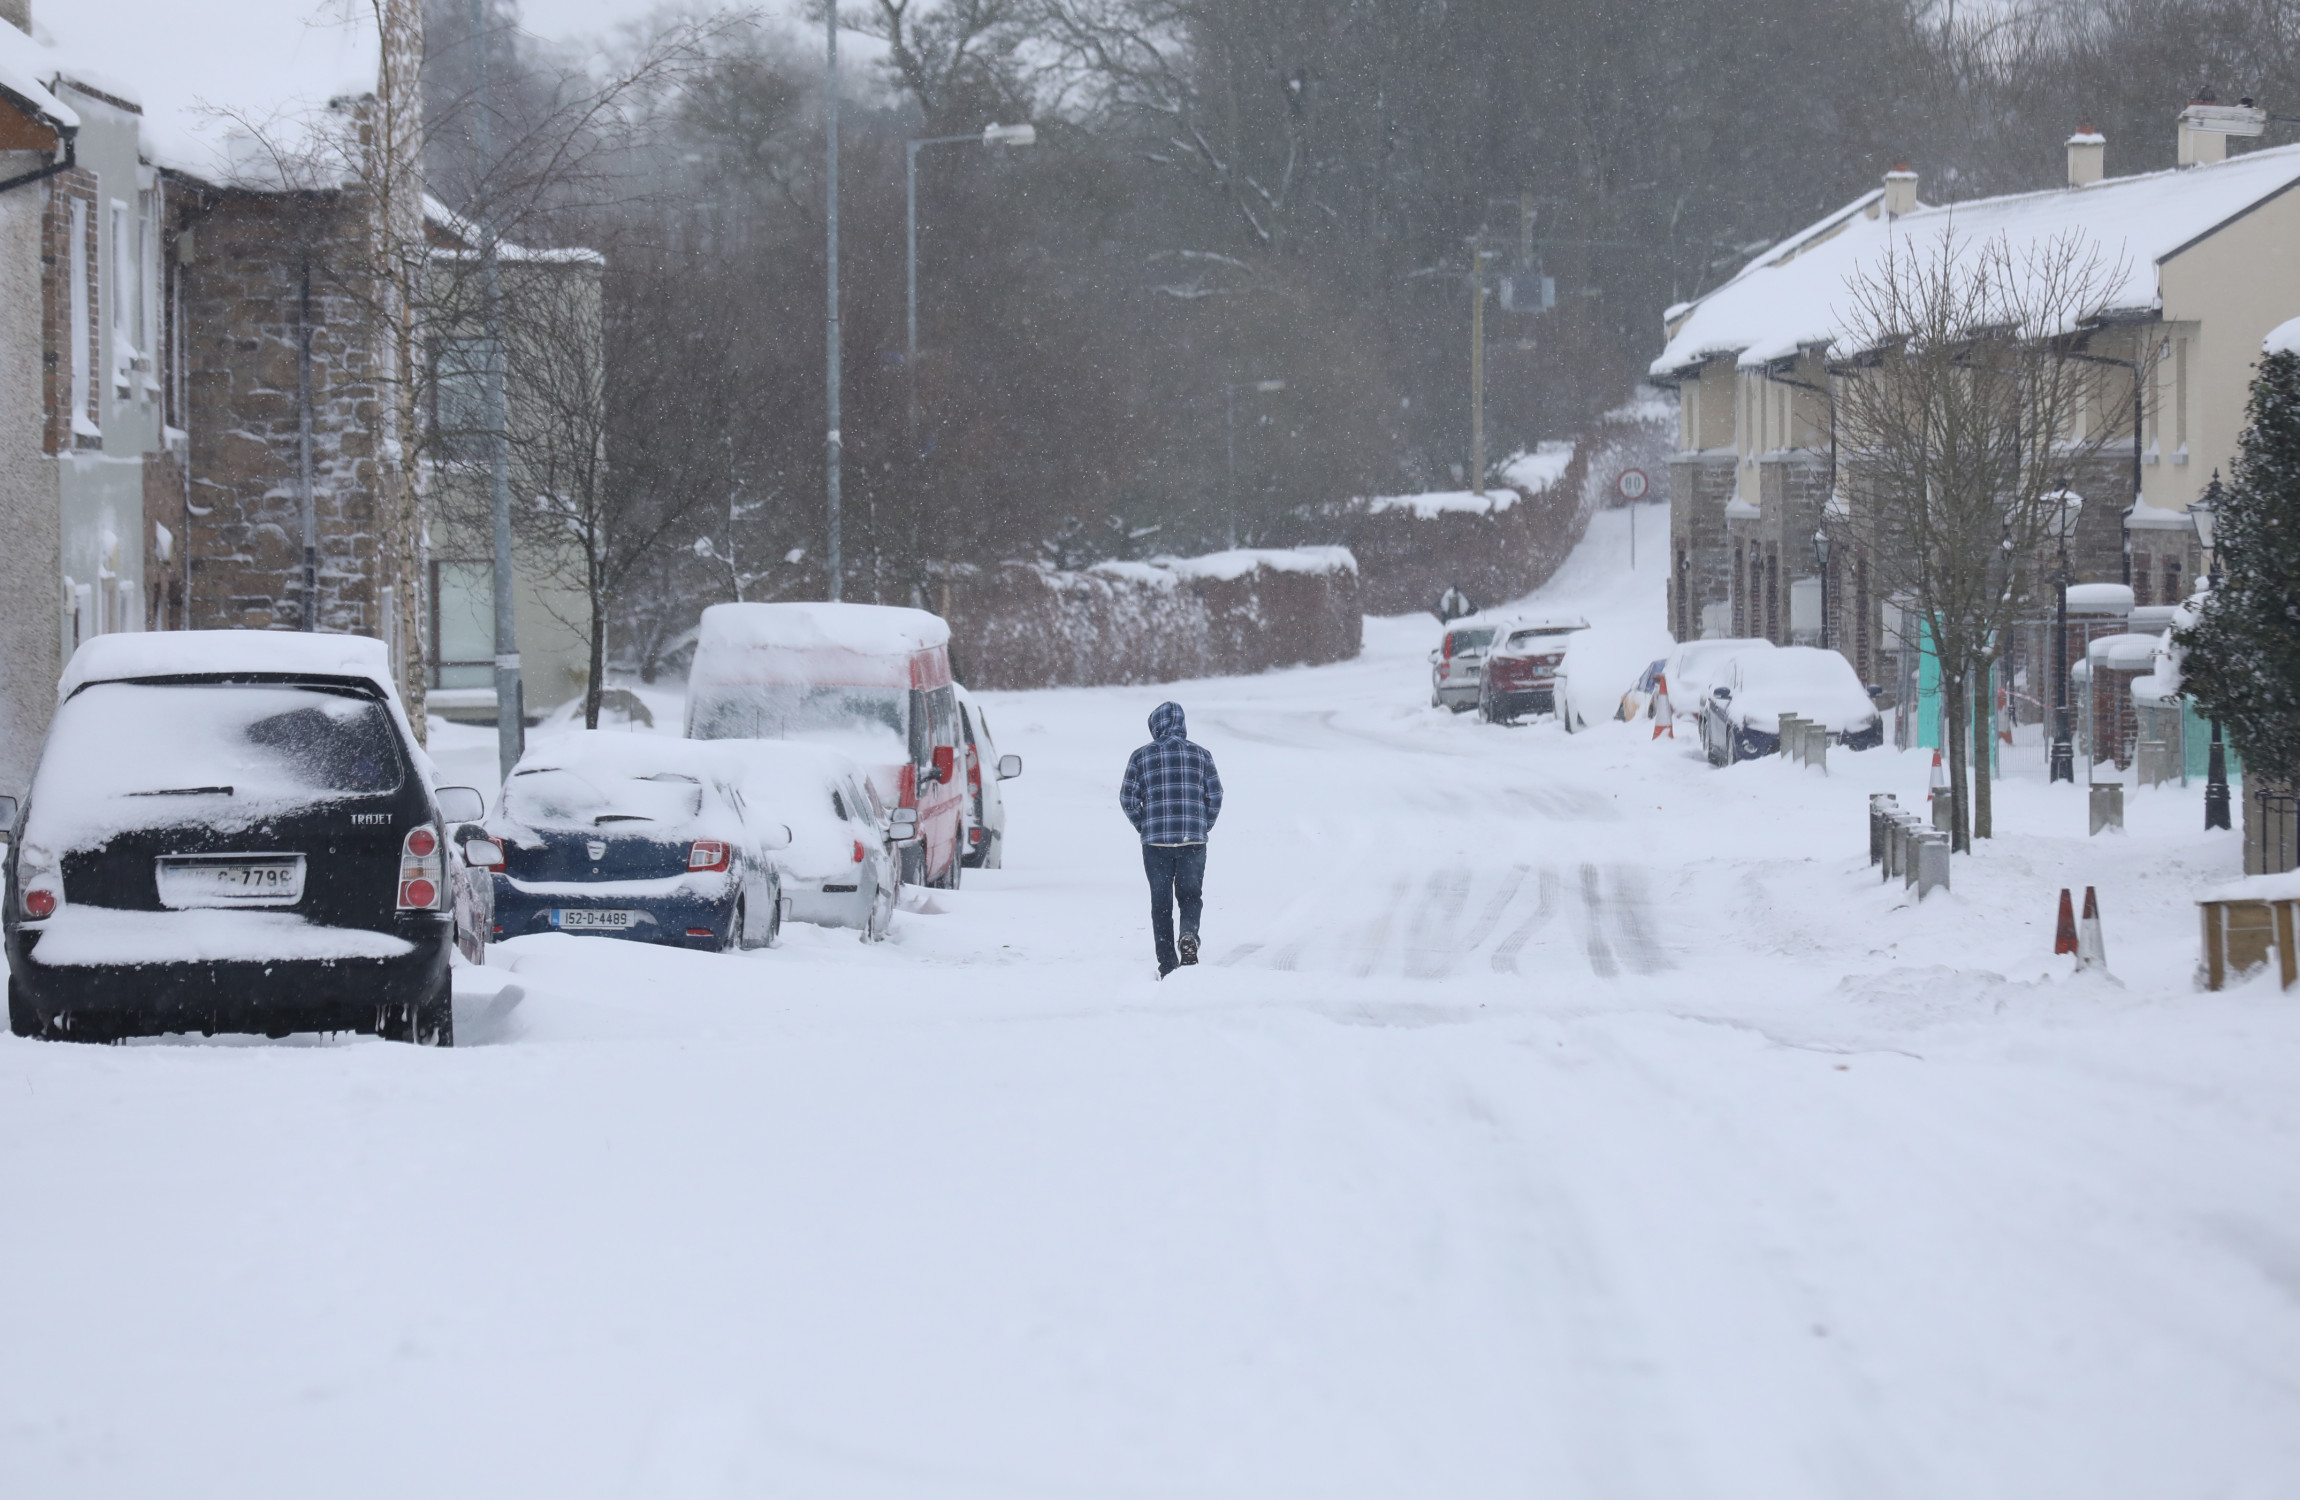 New status orange weather warning issued as snow hits Ireland overnight